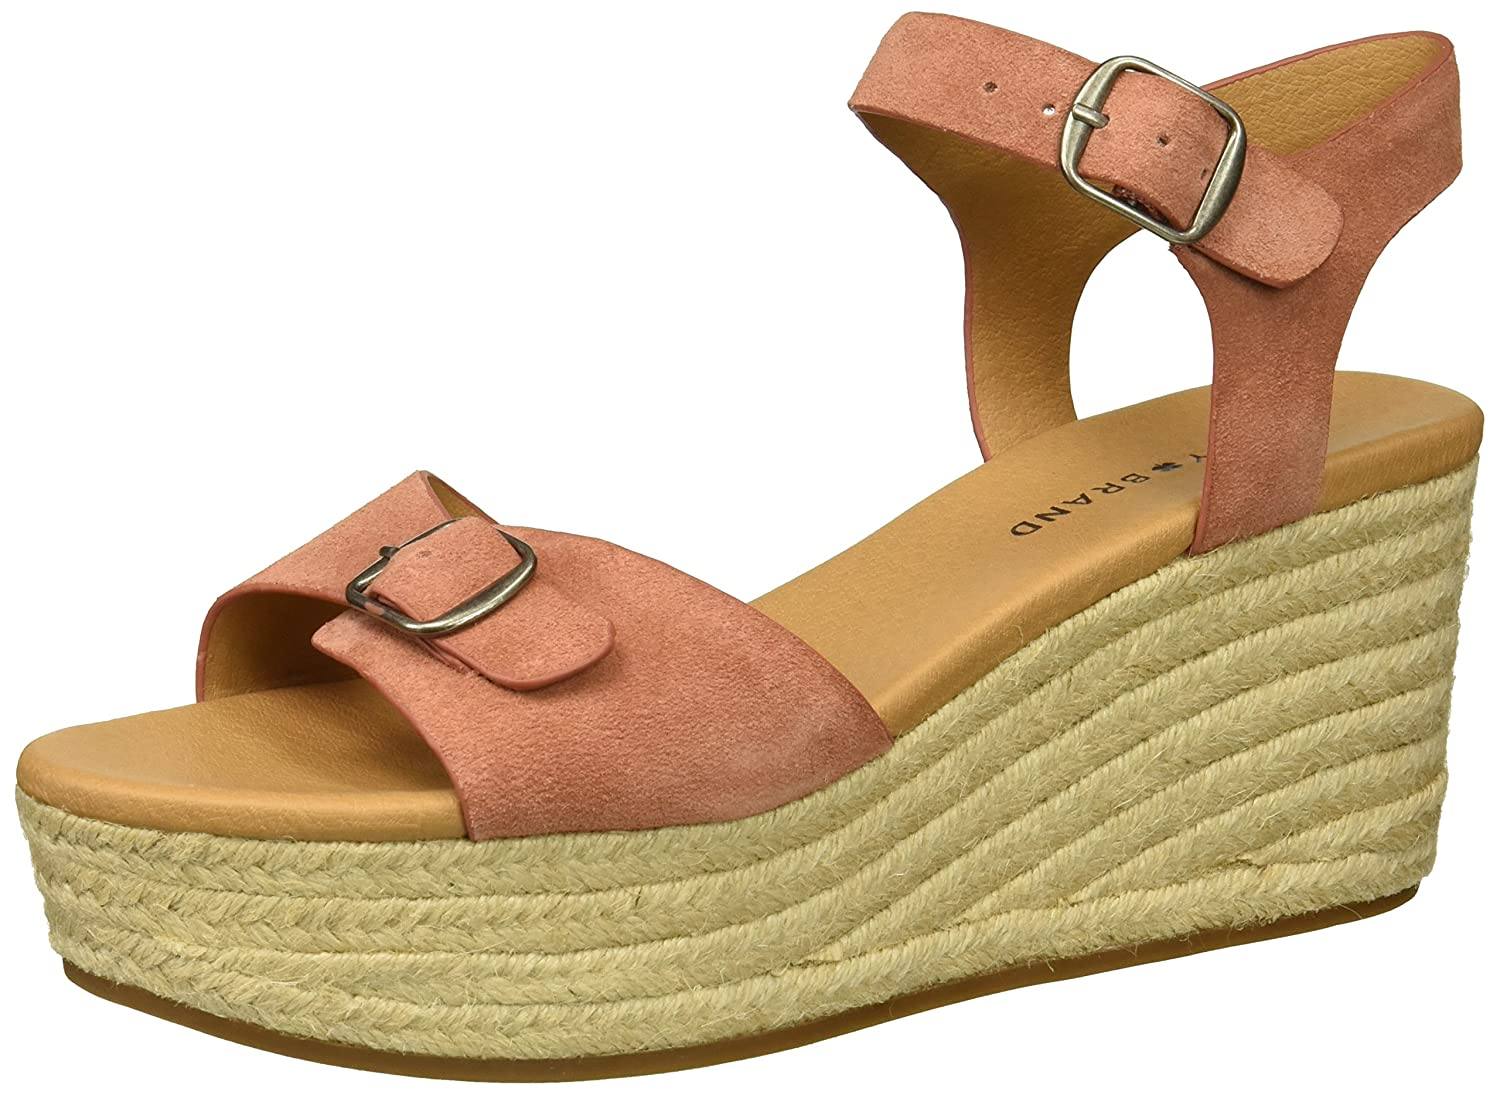 Lucky Brand Women's Naveah Espadrille Wedge Sandal B078C9QV57 5.5 M US|Canyon Rose